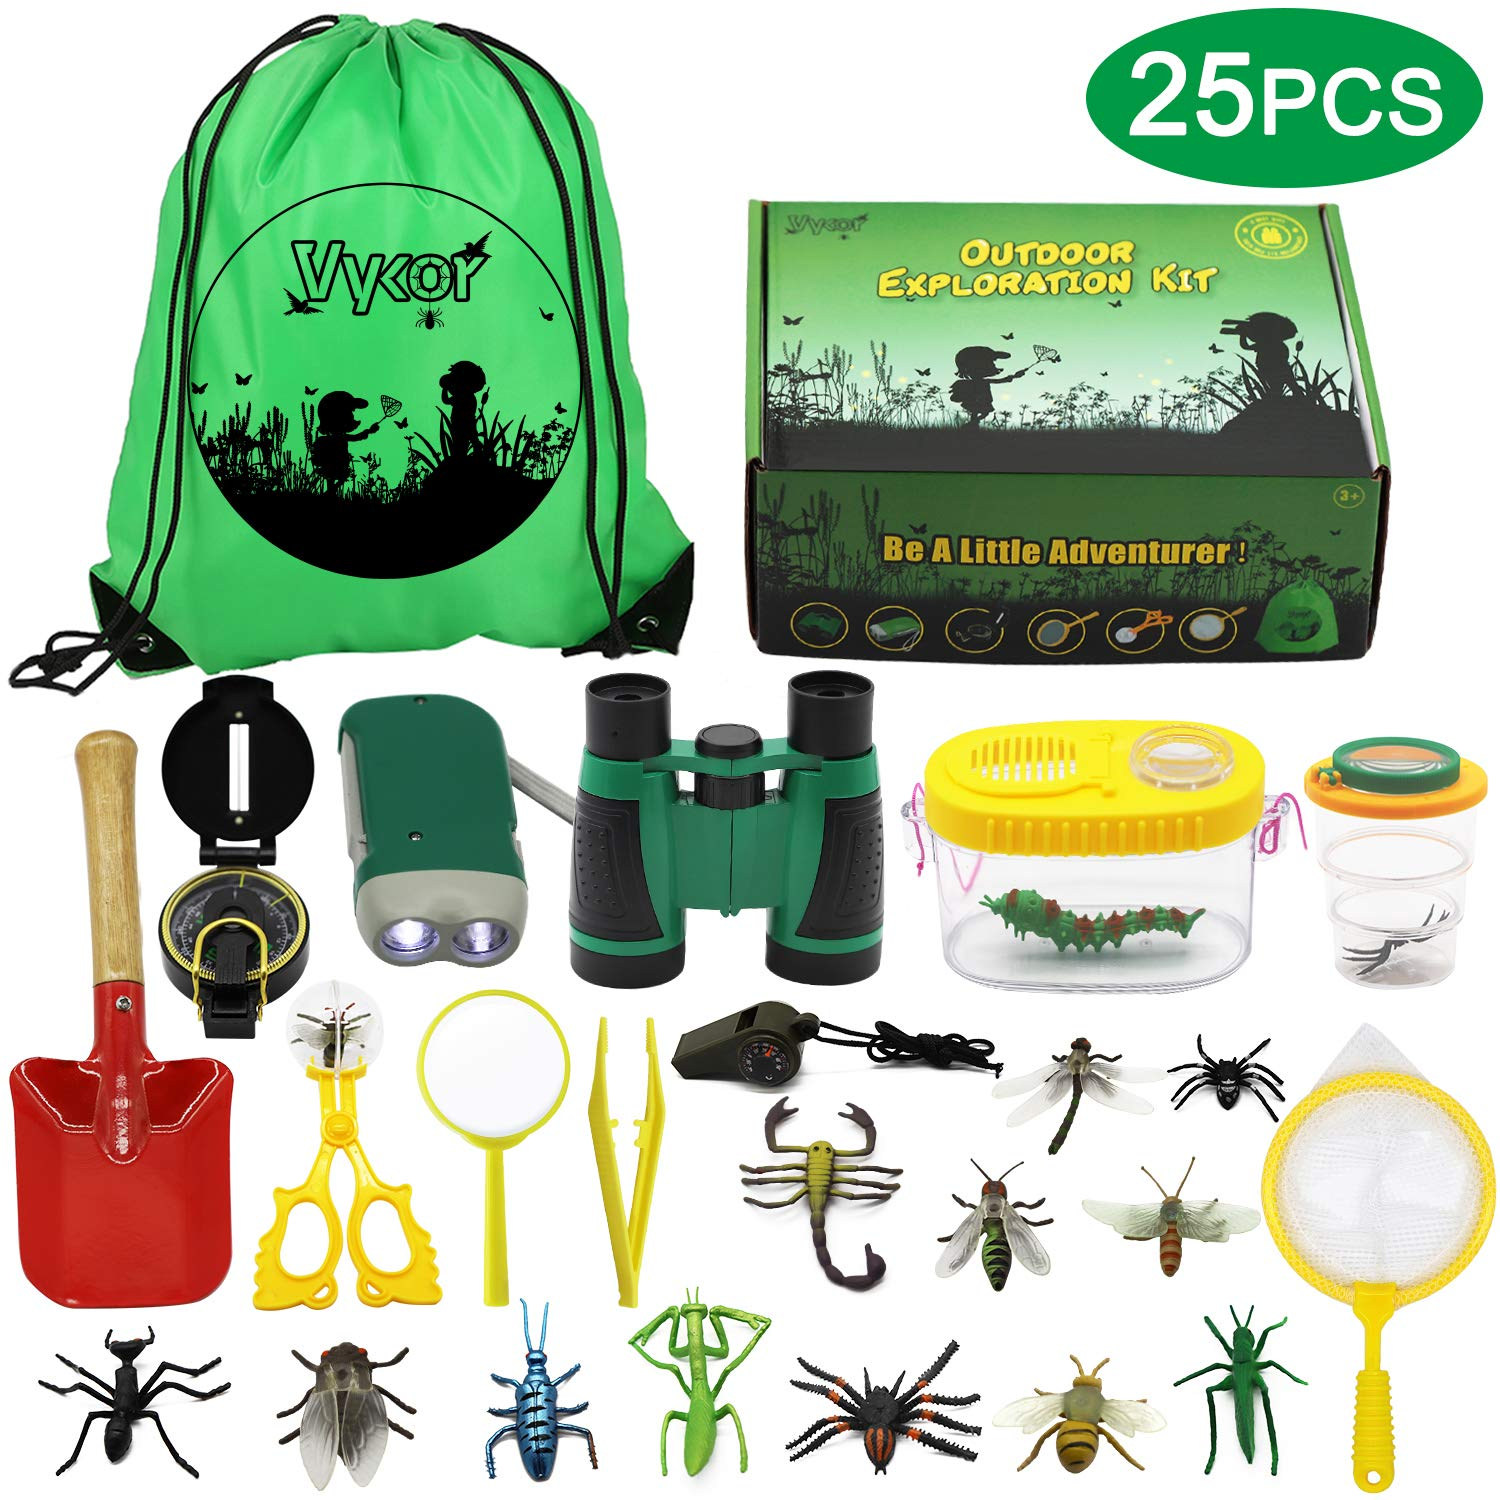 Vykor Outdoor Explorer Kit Toys Kids Adventure Kit